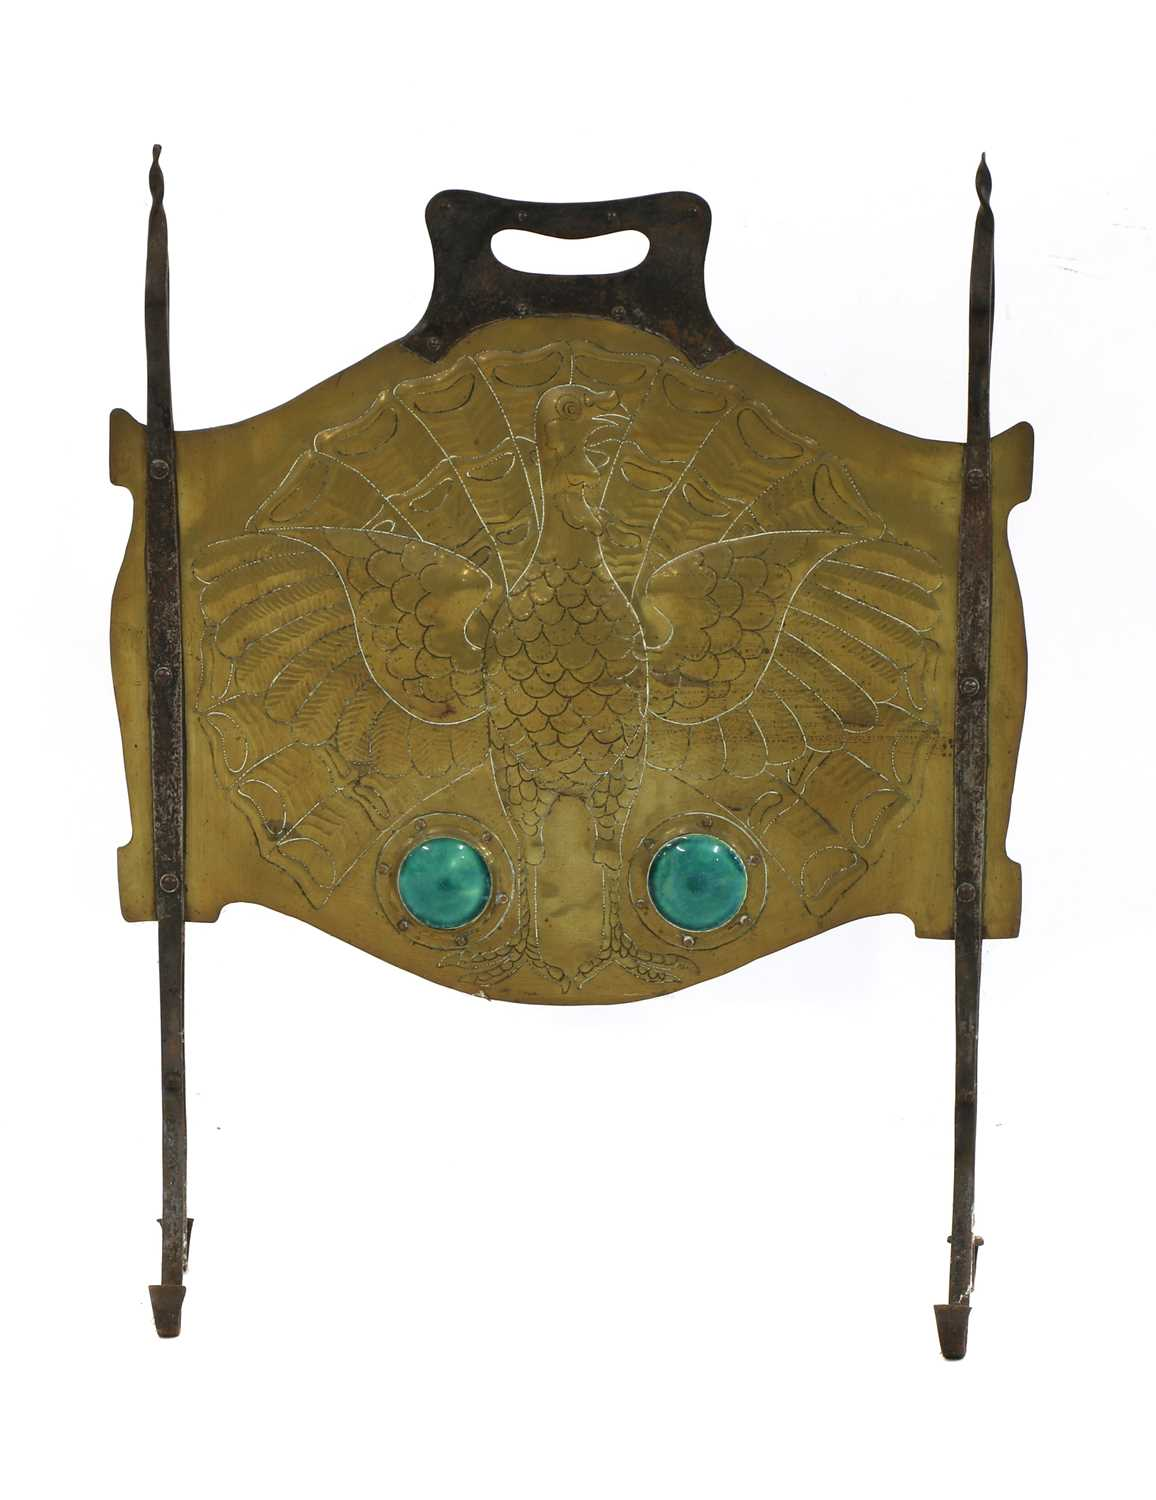 Lot 76 - An Arts and Crafts copper and steel-mounted fire screen